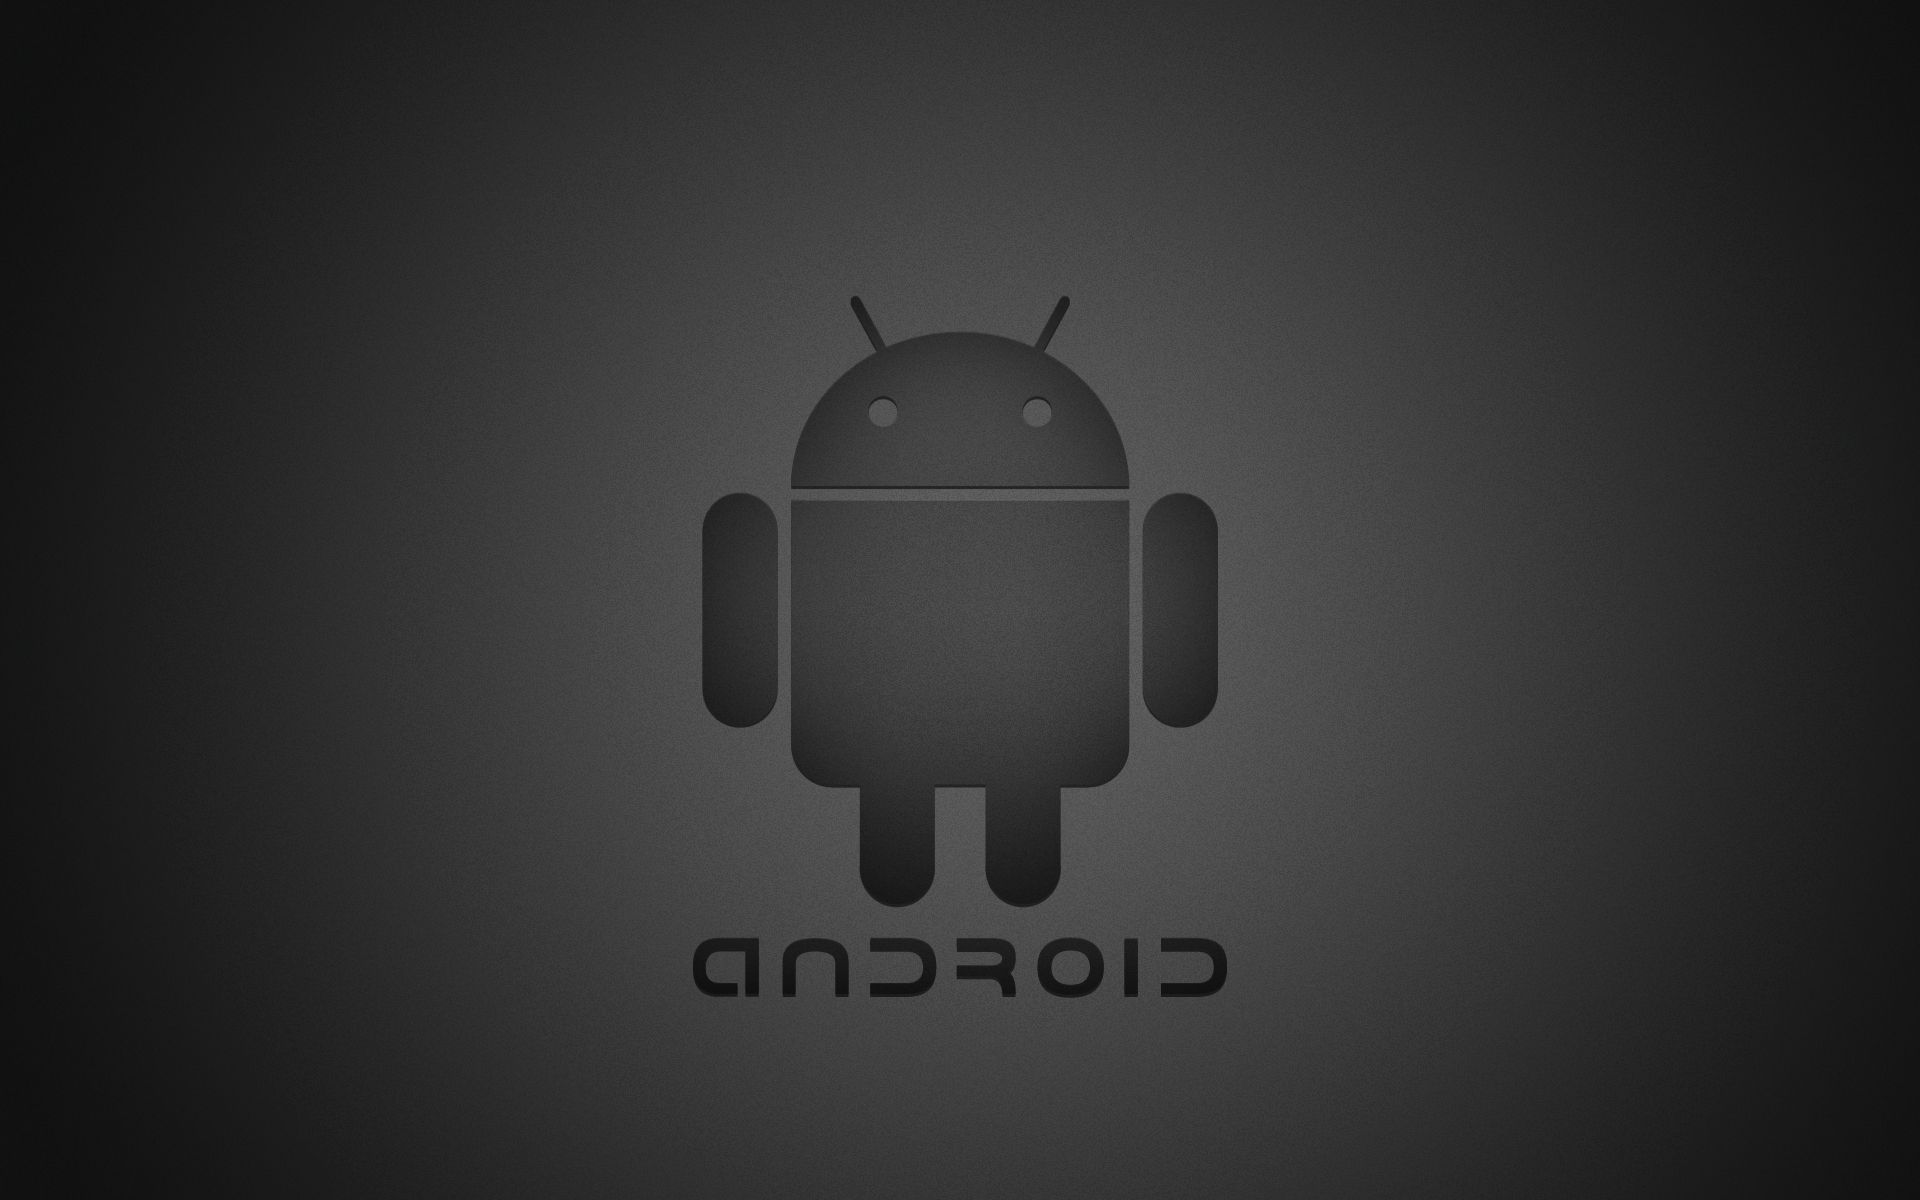 wallpaper android 22 wallpapers